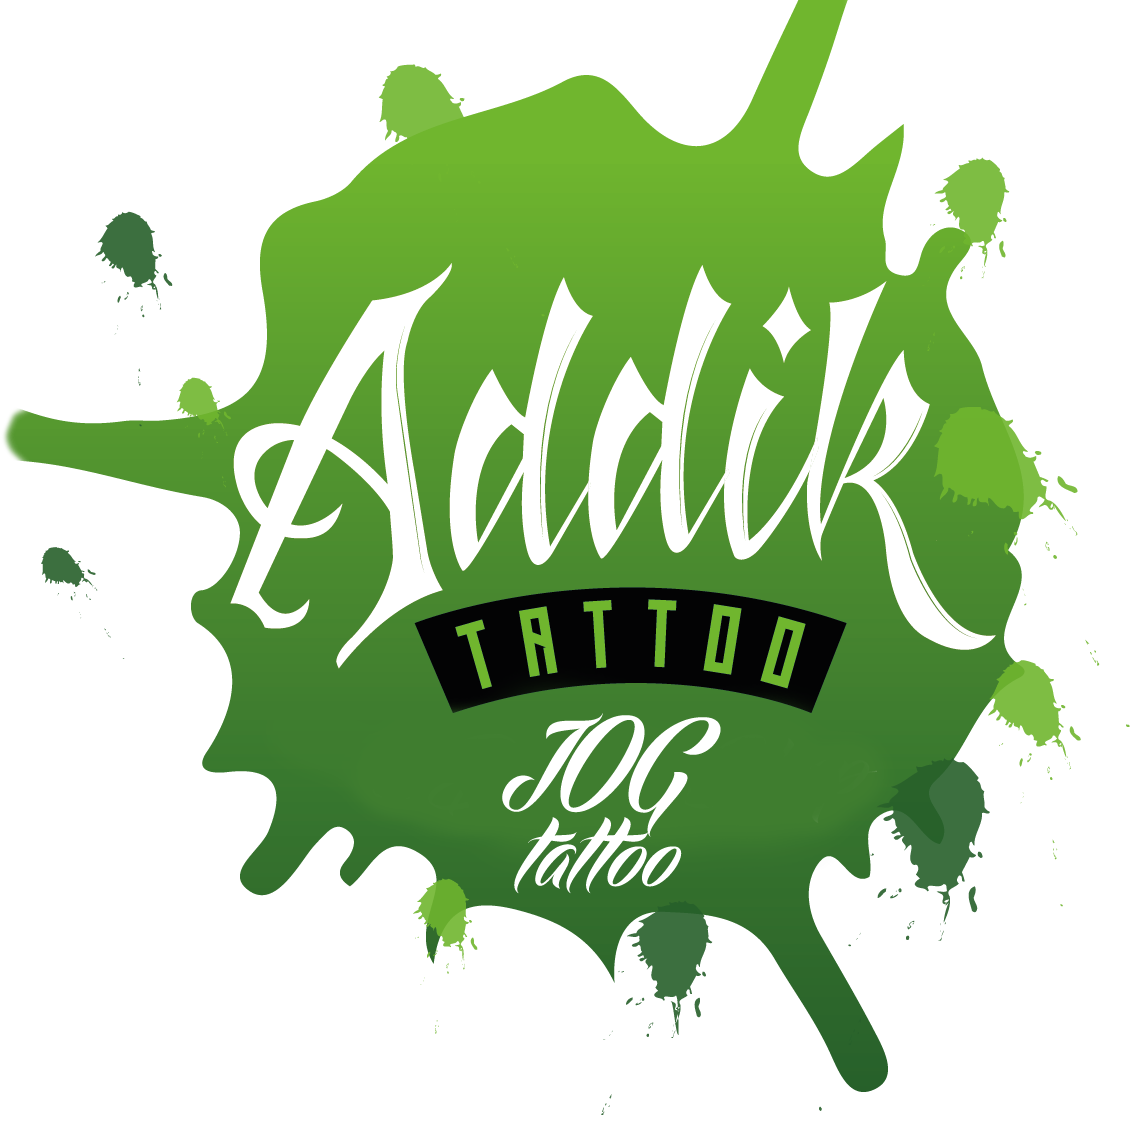 Logo Addik Tattoo - Tattouages et percings à Chicoutimi au Saguenay